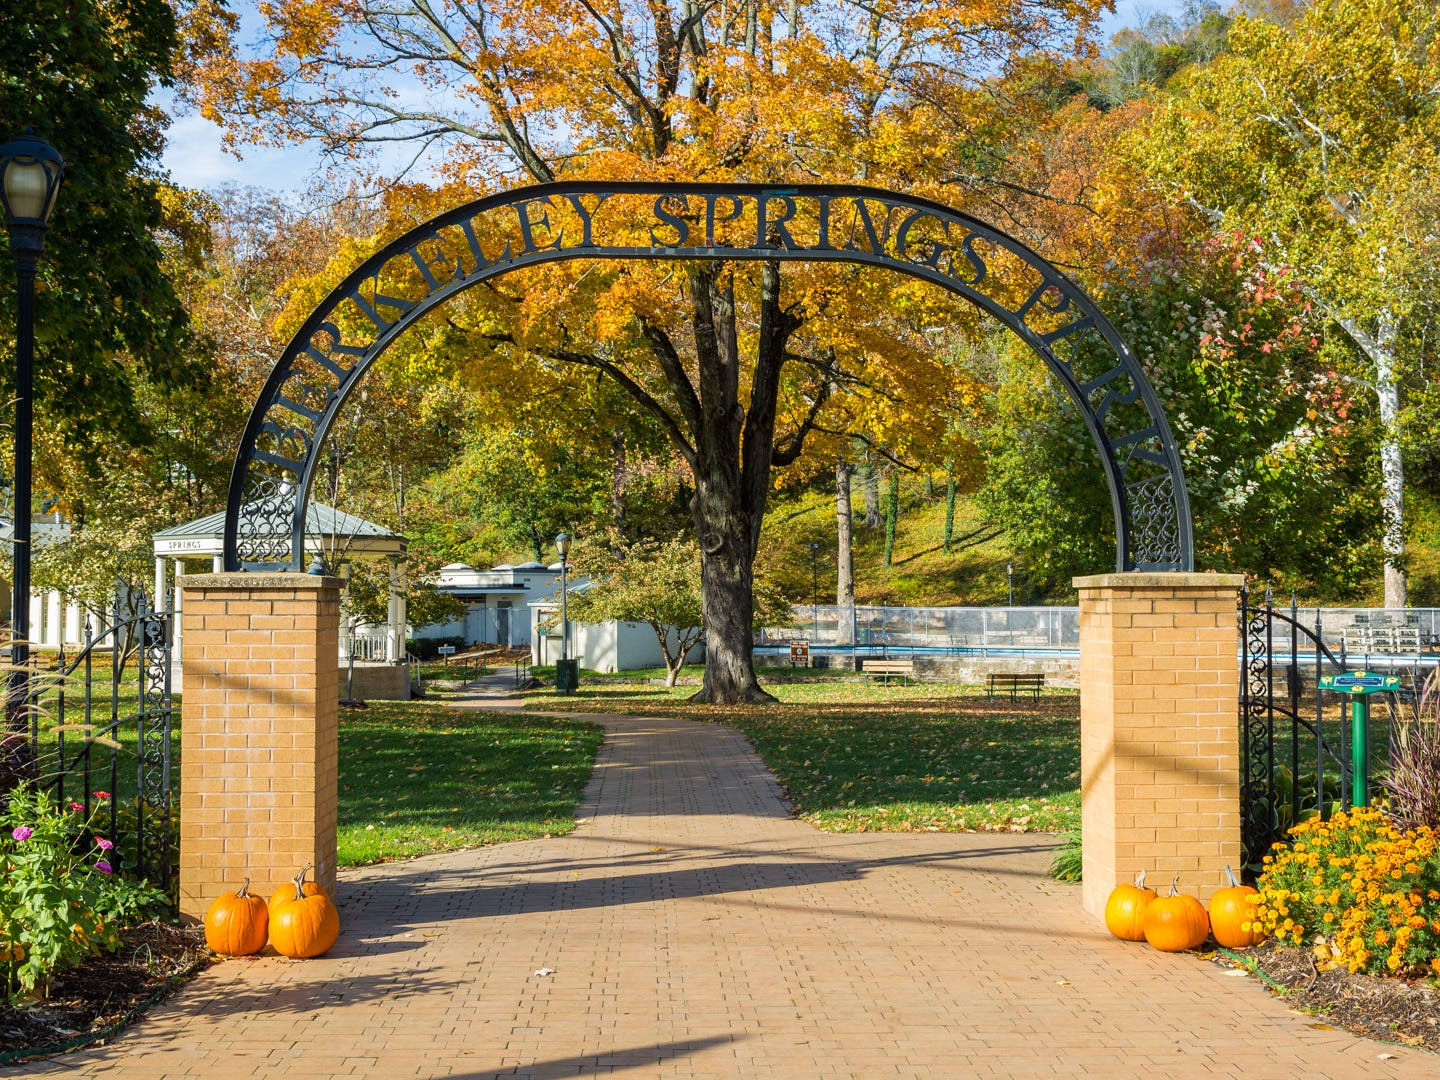 West Virginia: Berkeley Springs is a historic spa town that's just as suited for romantic getaways as it is a family vacation. Get pampered at one of the local spas, browse the shops, check out the local arts, take a dip in the warm springs at Berkeley Springs State Park, go fishing or hiking at Cacapon Resort State Park or feed fish at the Ridge Fish Hatchery. Ridge Fish Hatchery: Free.